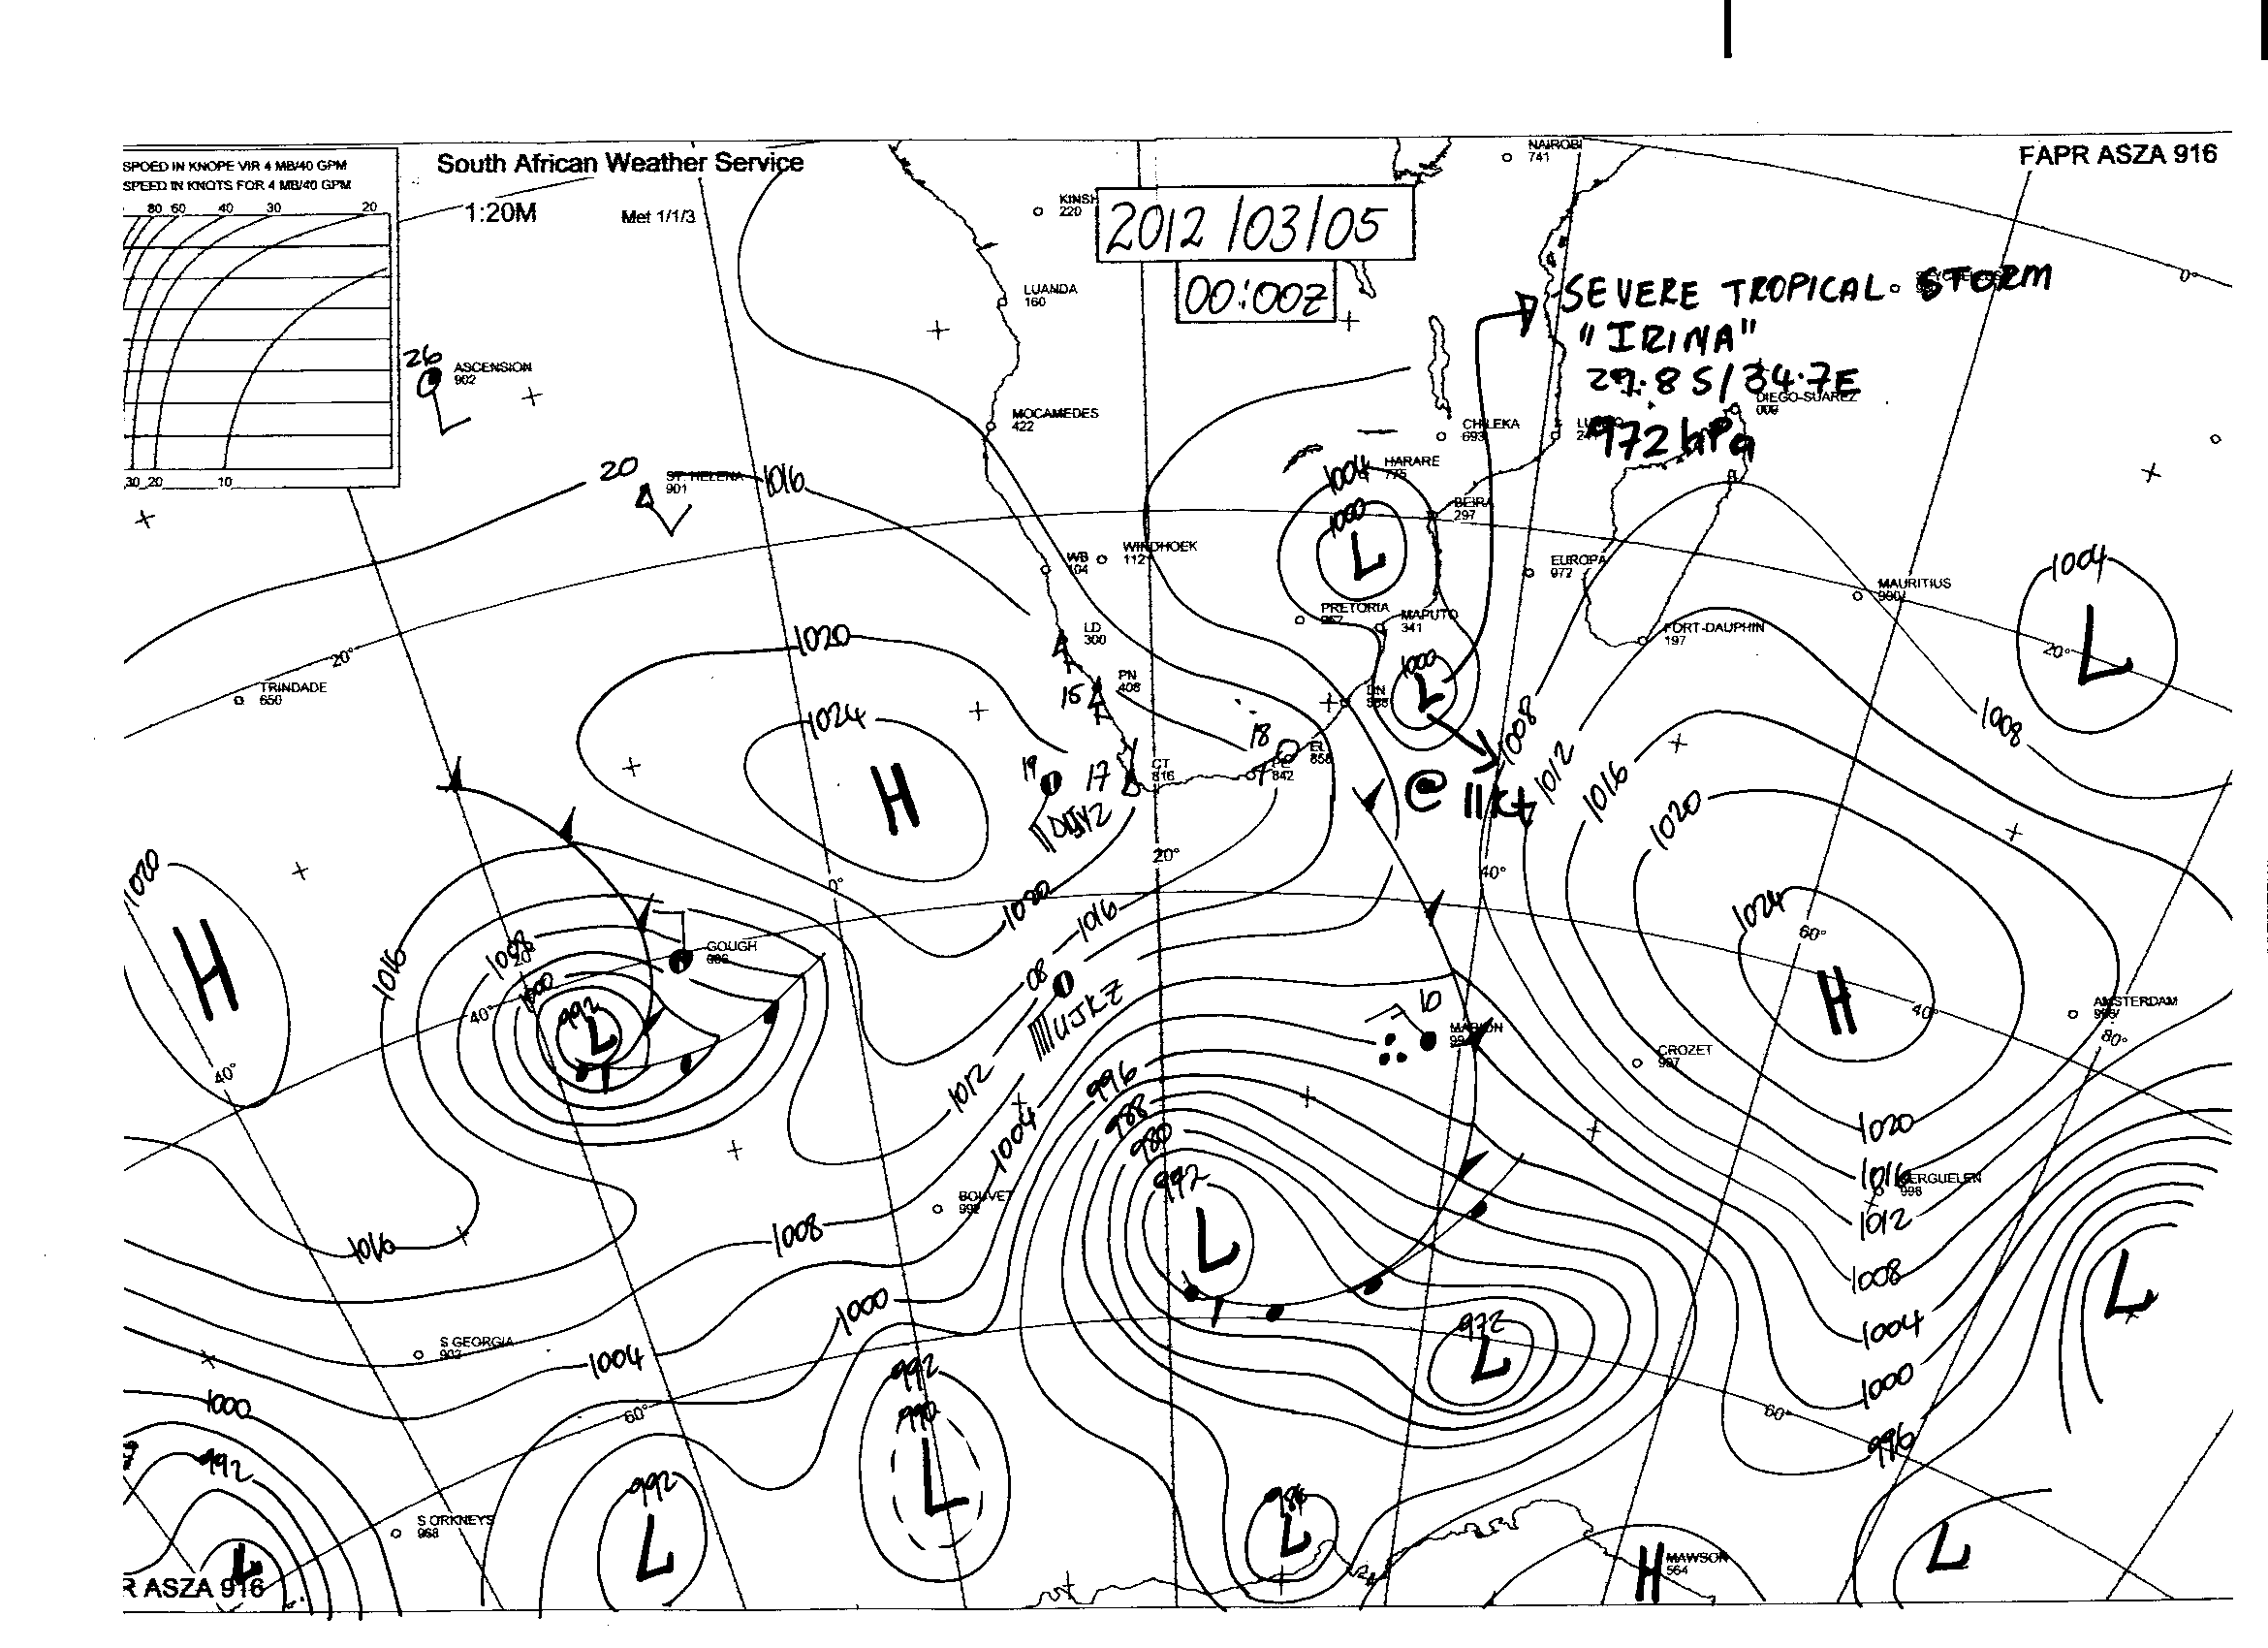 Synoptic weather map images synoptic weather map weather map 5 march 2012 biocorpaavc